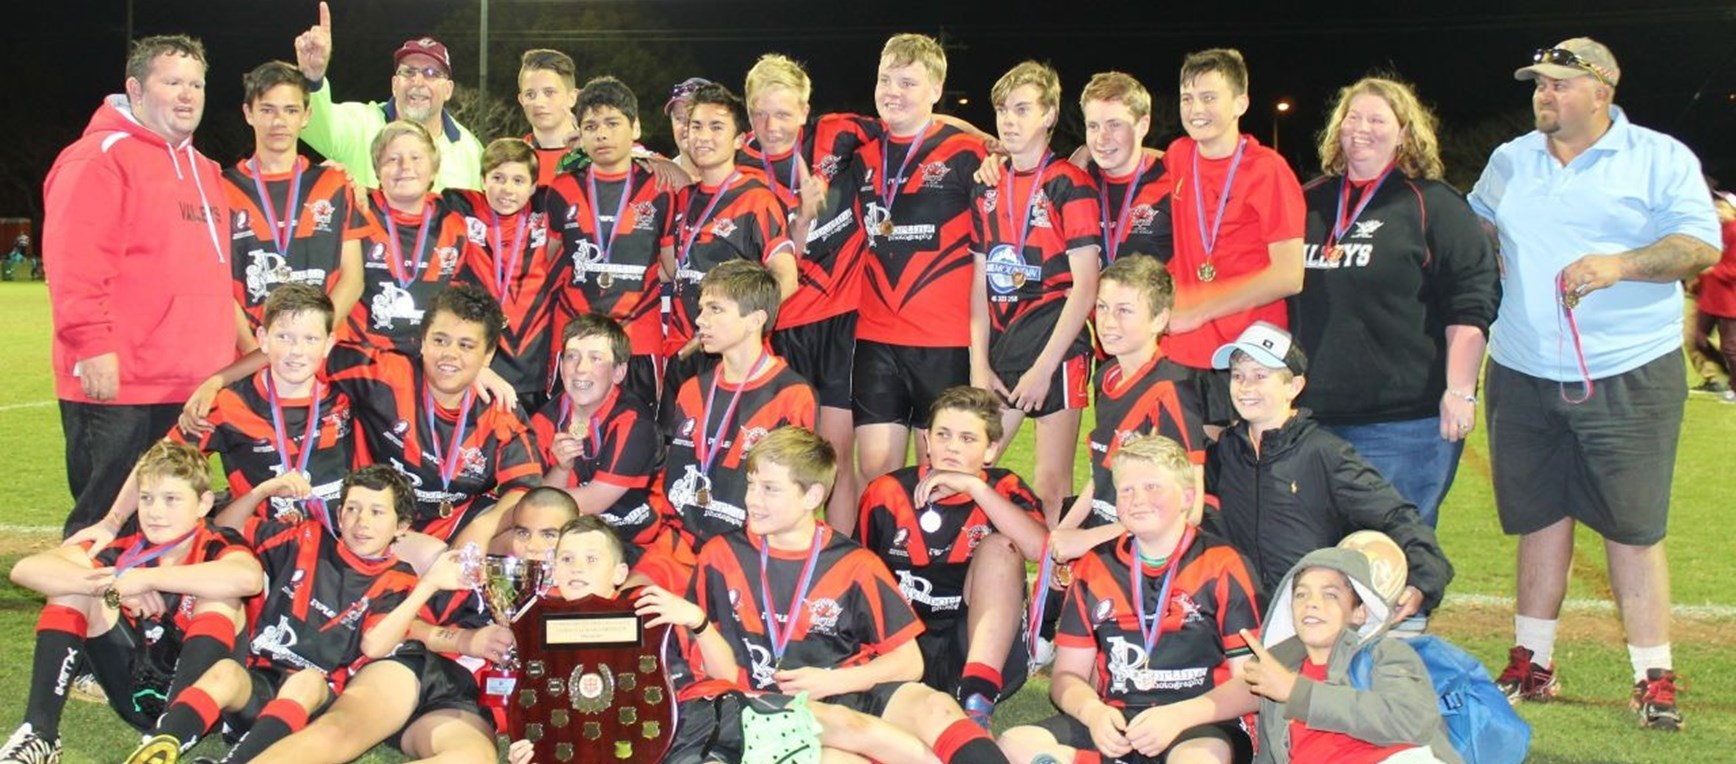 Gallery: Toowoomba Juniors